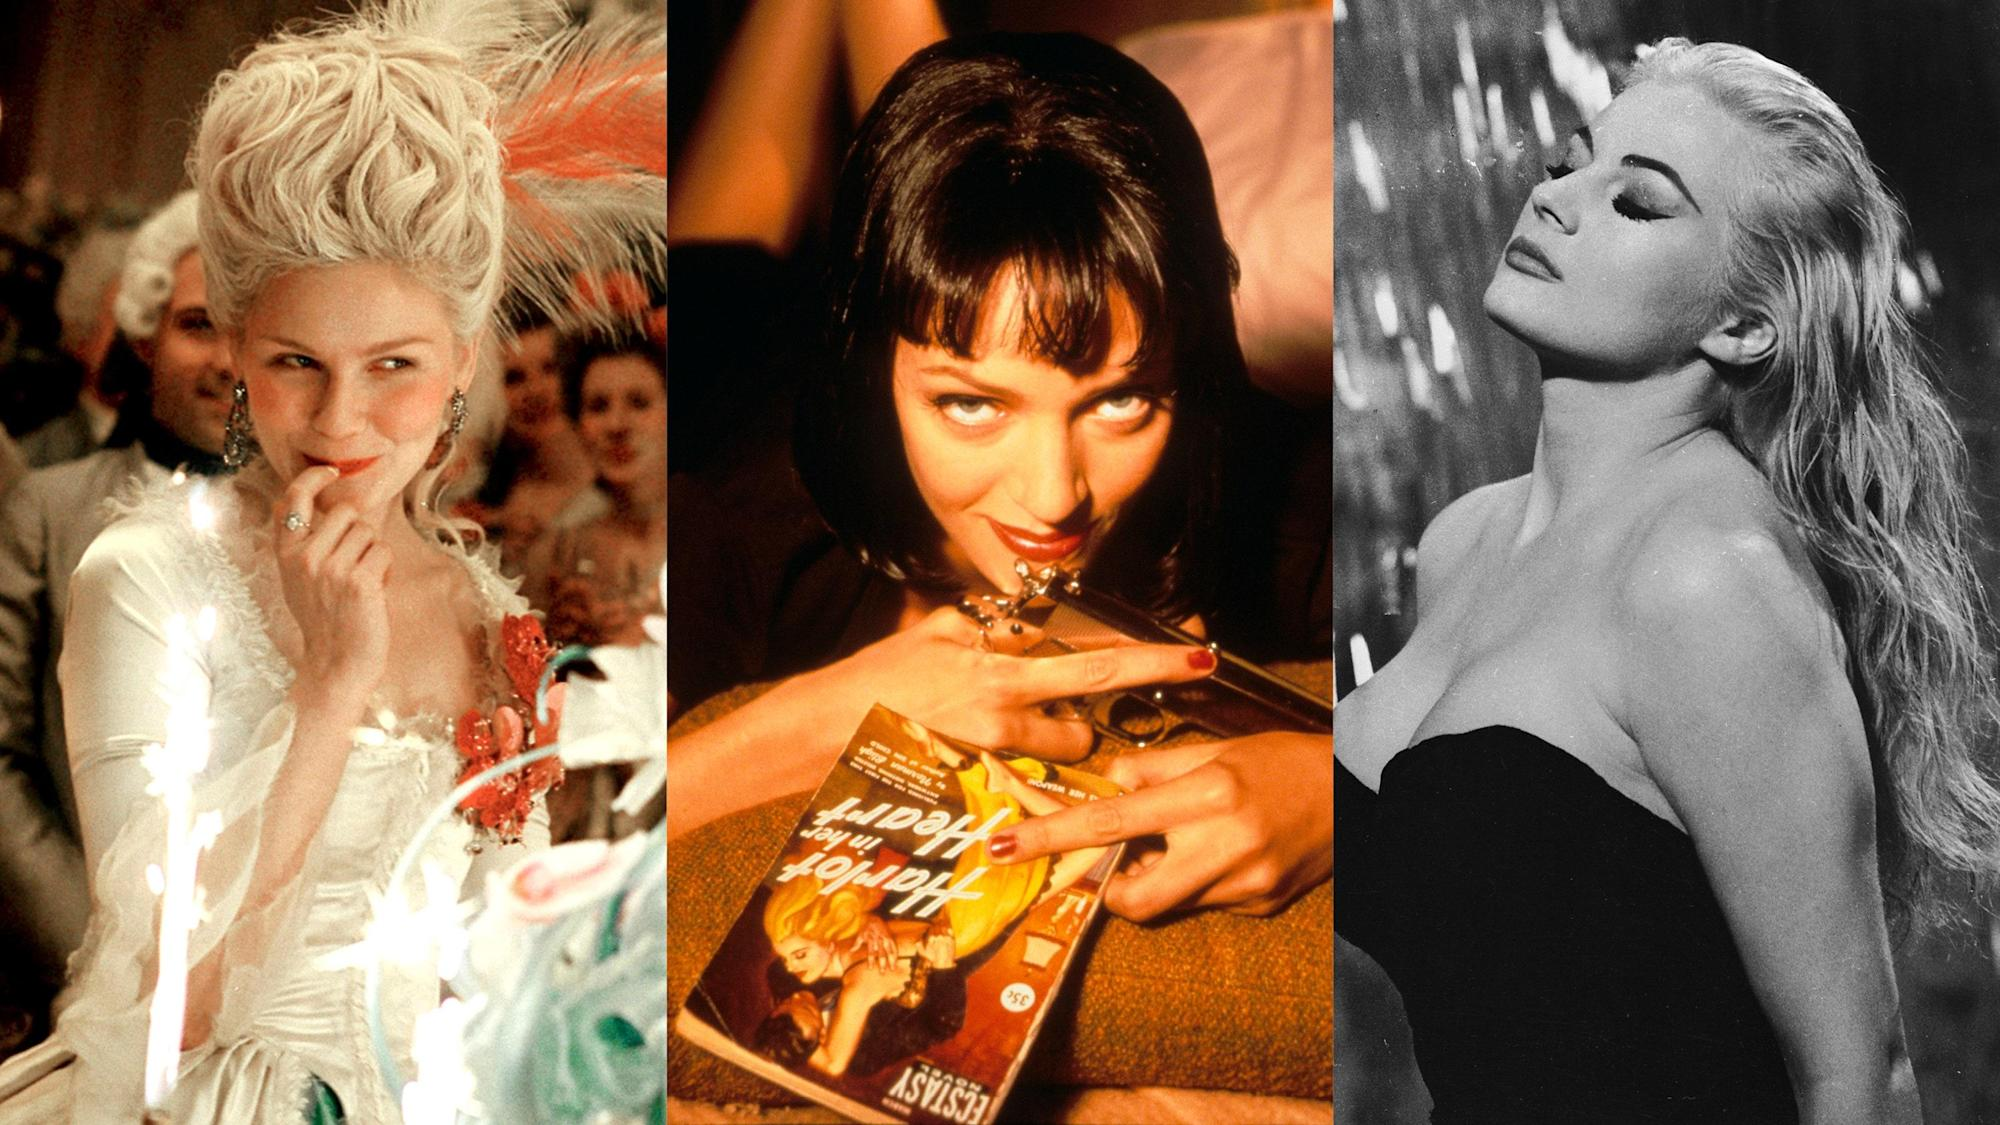 [VoxSpace Selects] The Most Controversial Movies Ever Made